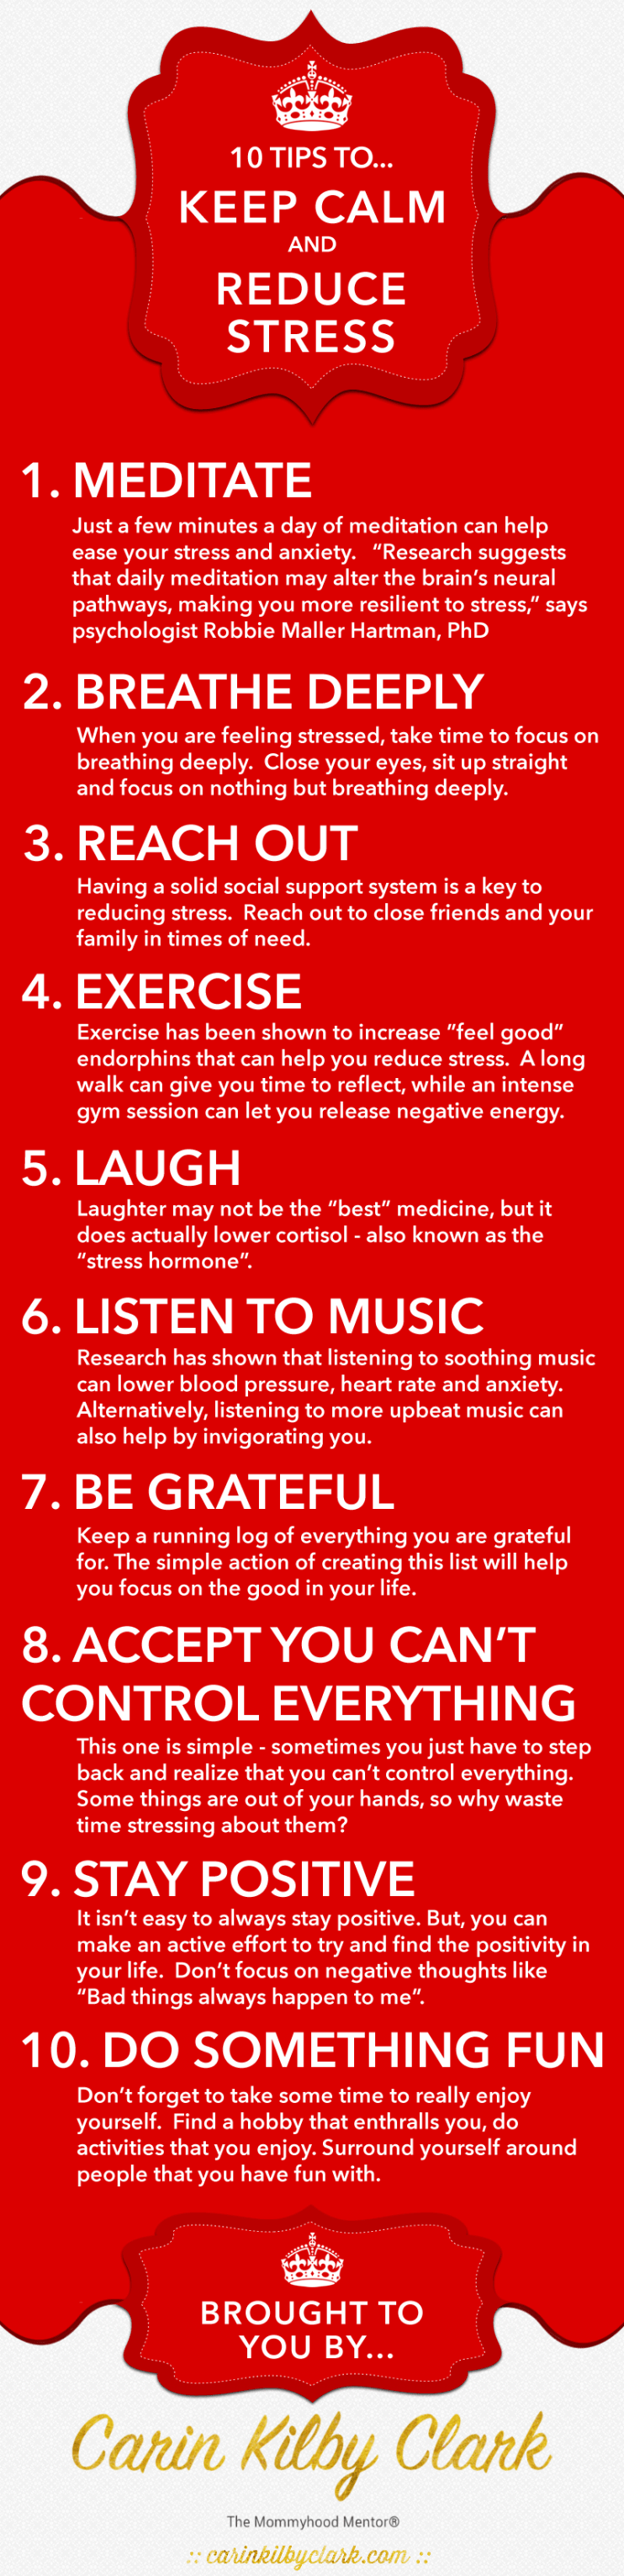 10 Tips to Keep Calm & Reduce Stress [Infographic] via @carinkilbyclark